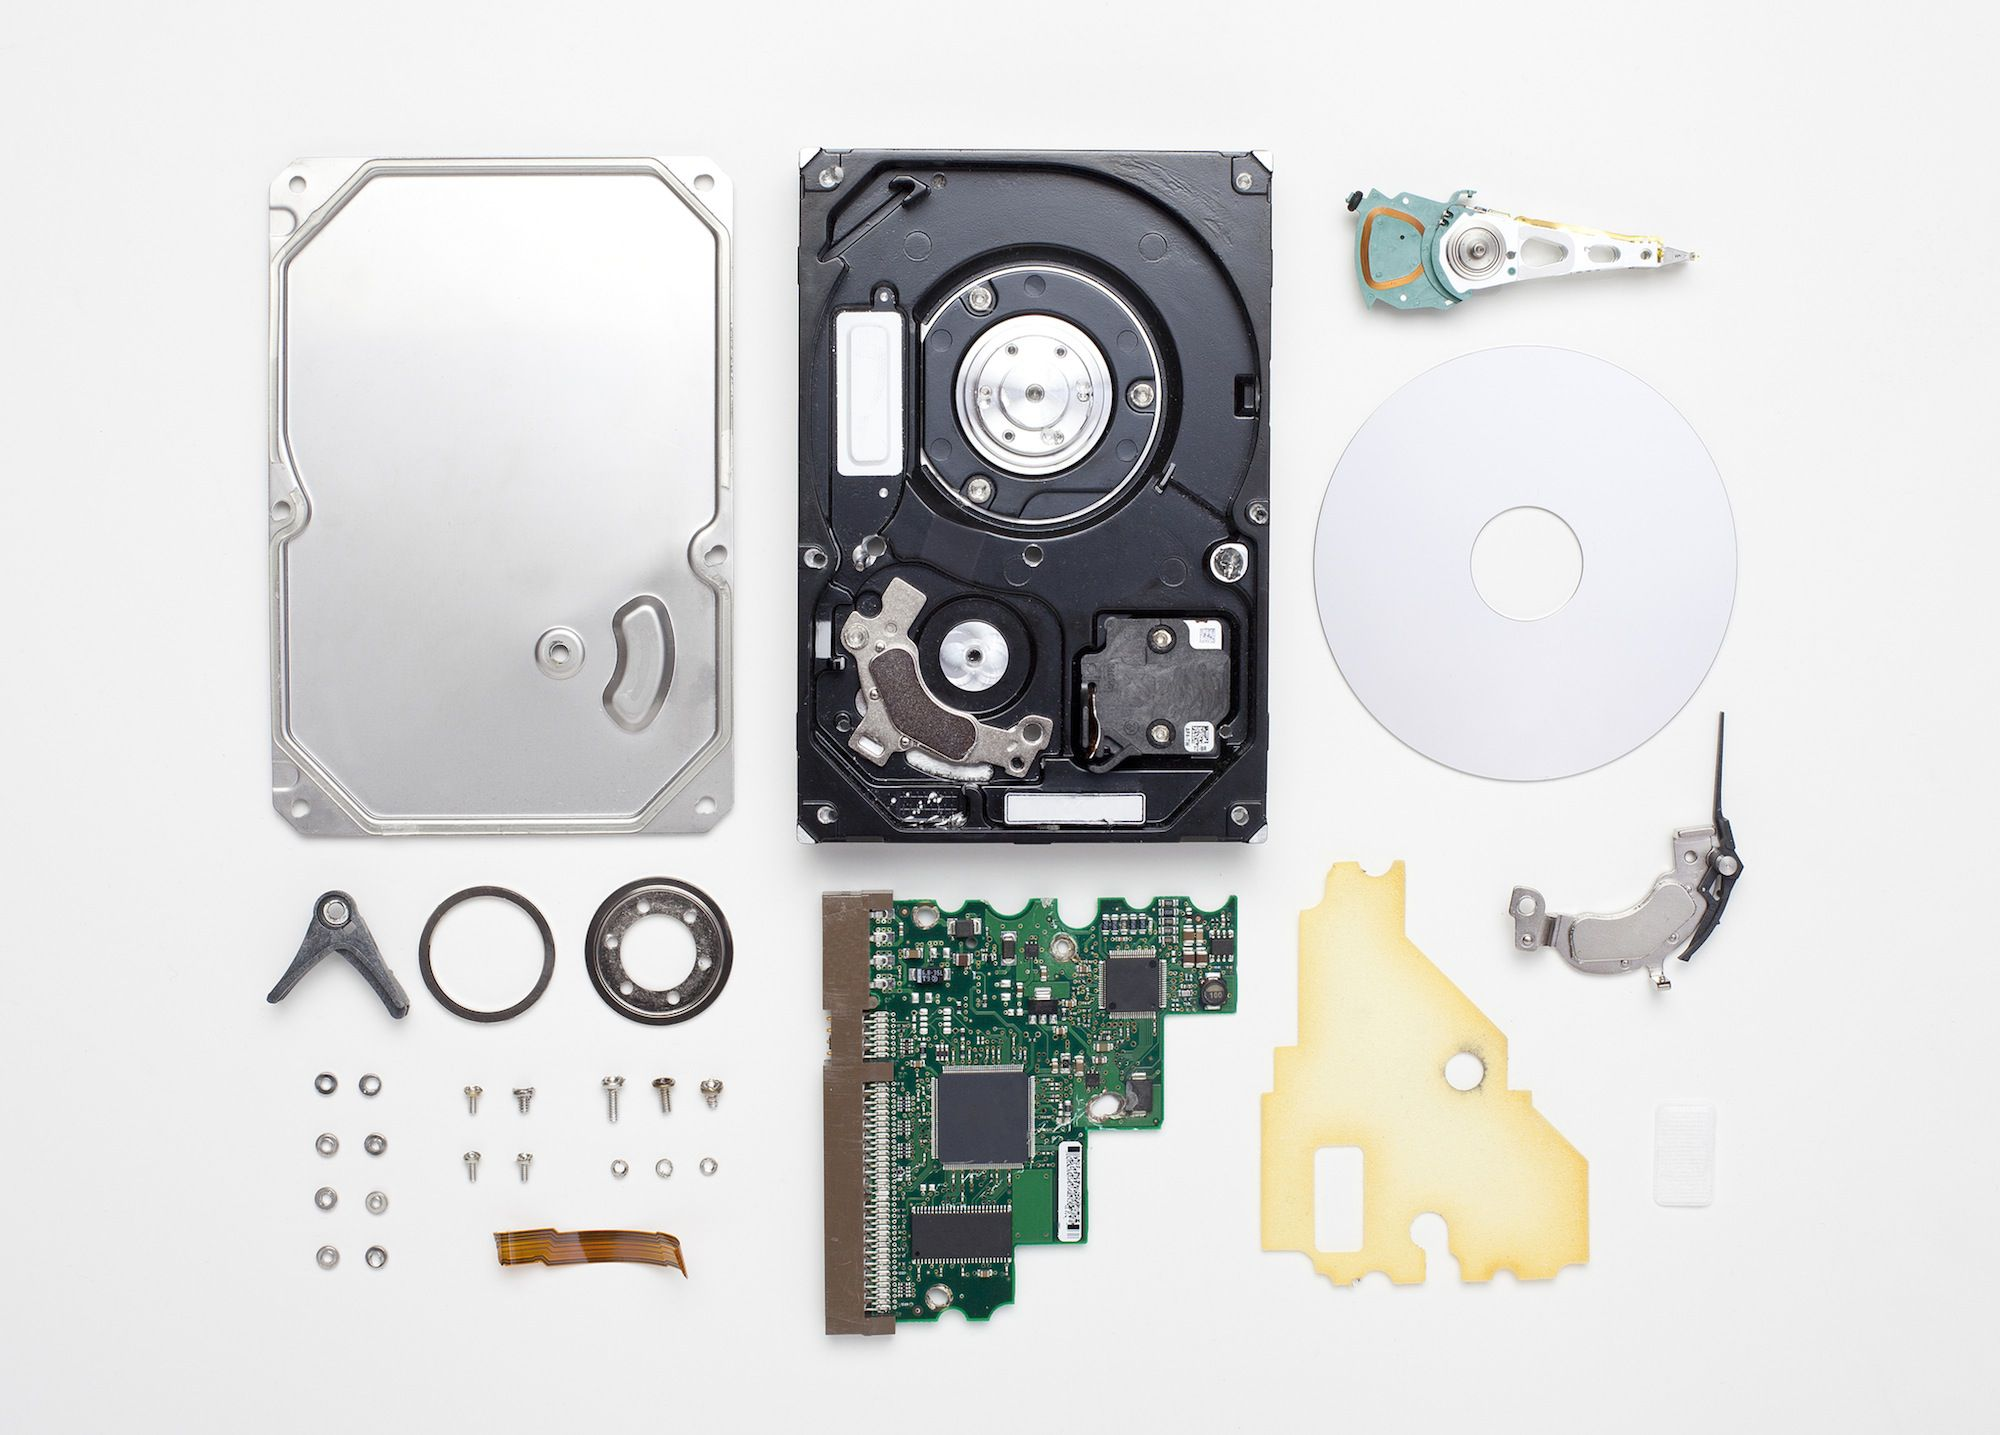 The Portable Hard Drive Tips & Guide